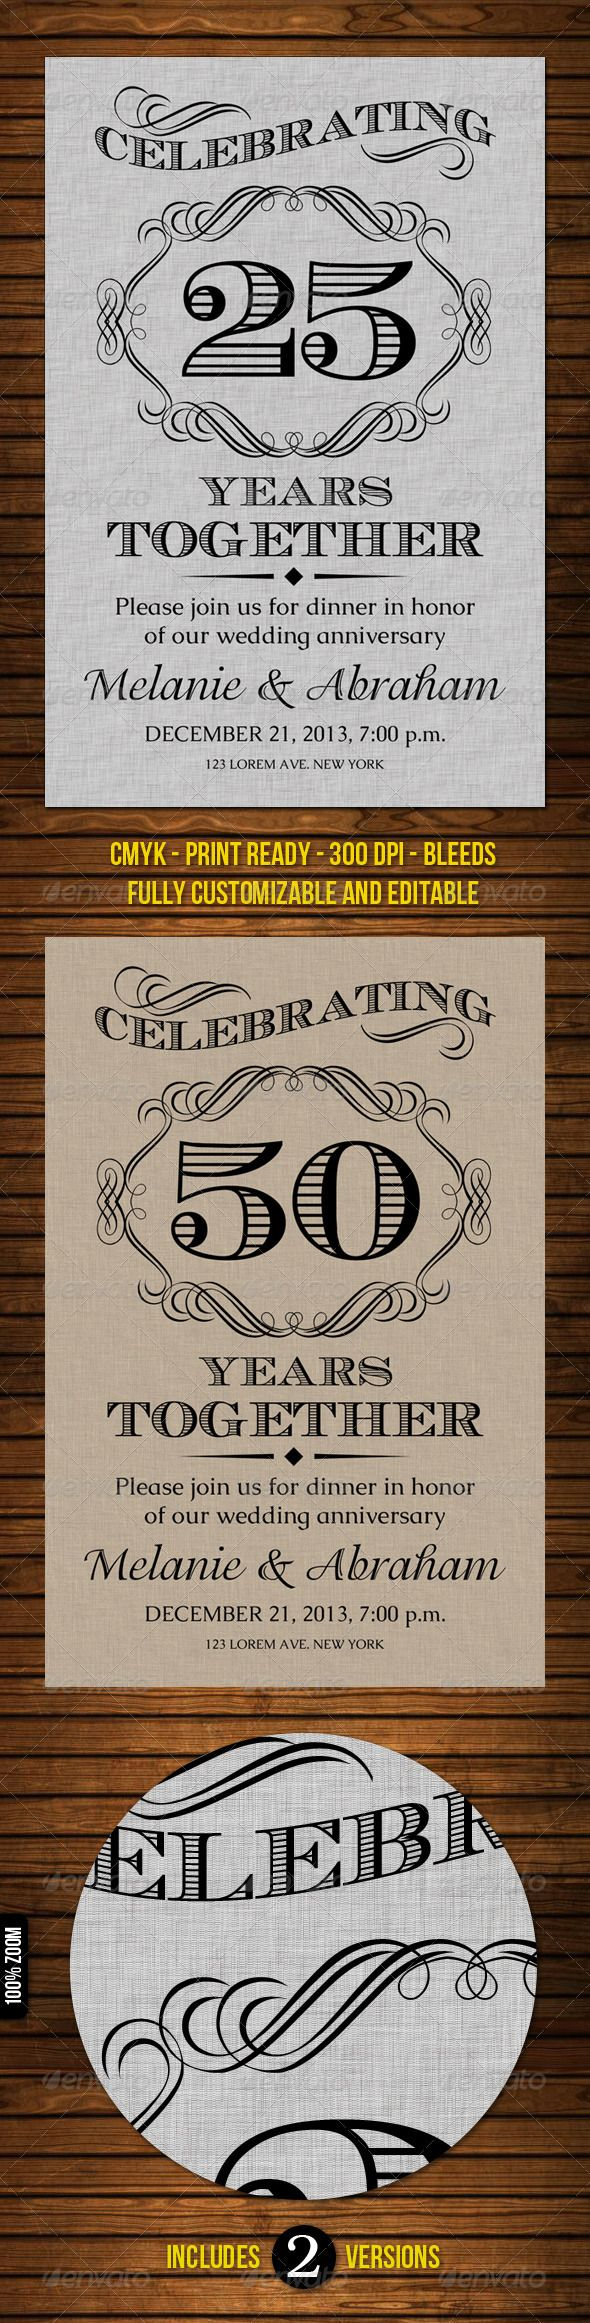 40 best best postcards images on pinterest print templates wedding anniversary cards stopboris Images